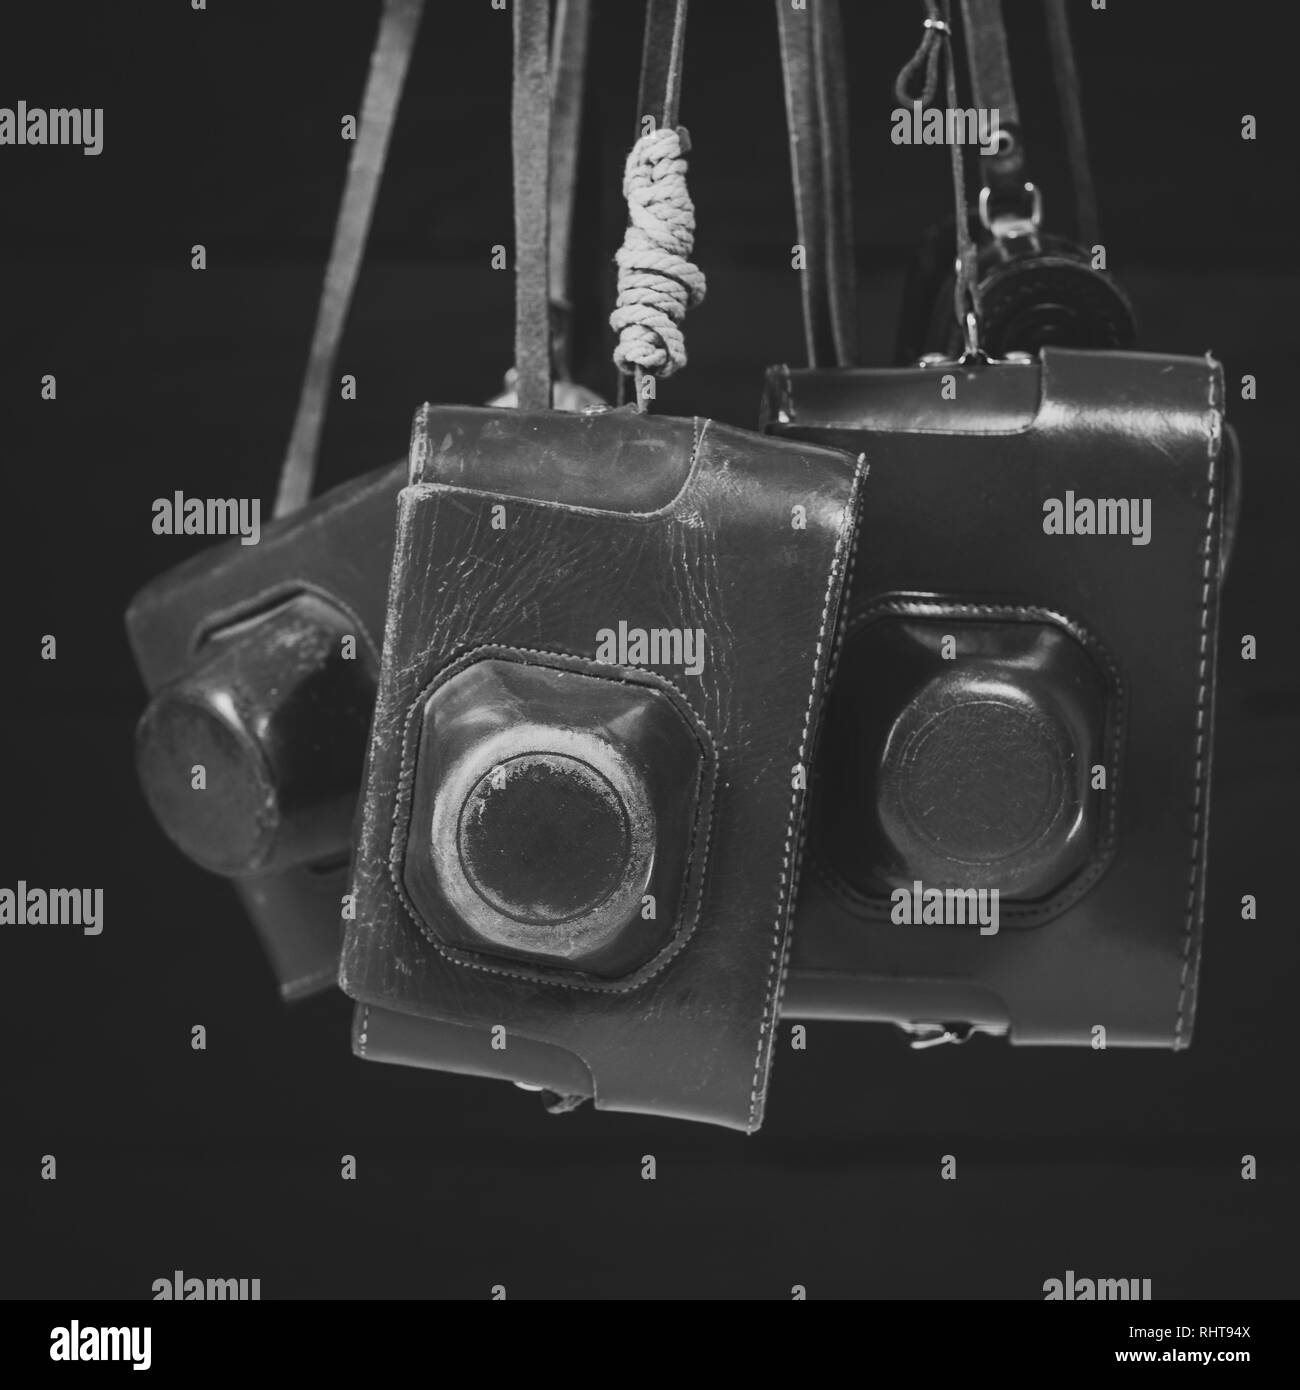 Retro cameras in leather covers, monochrome and matte effect. Collecting of antiques, auction - Stock Image